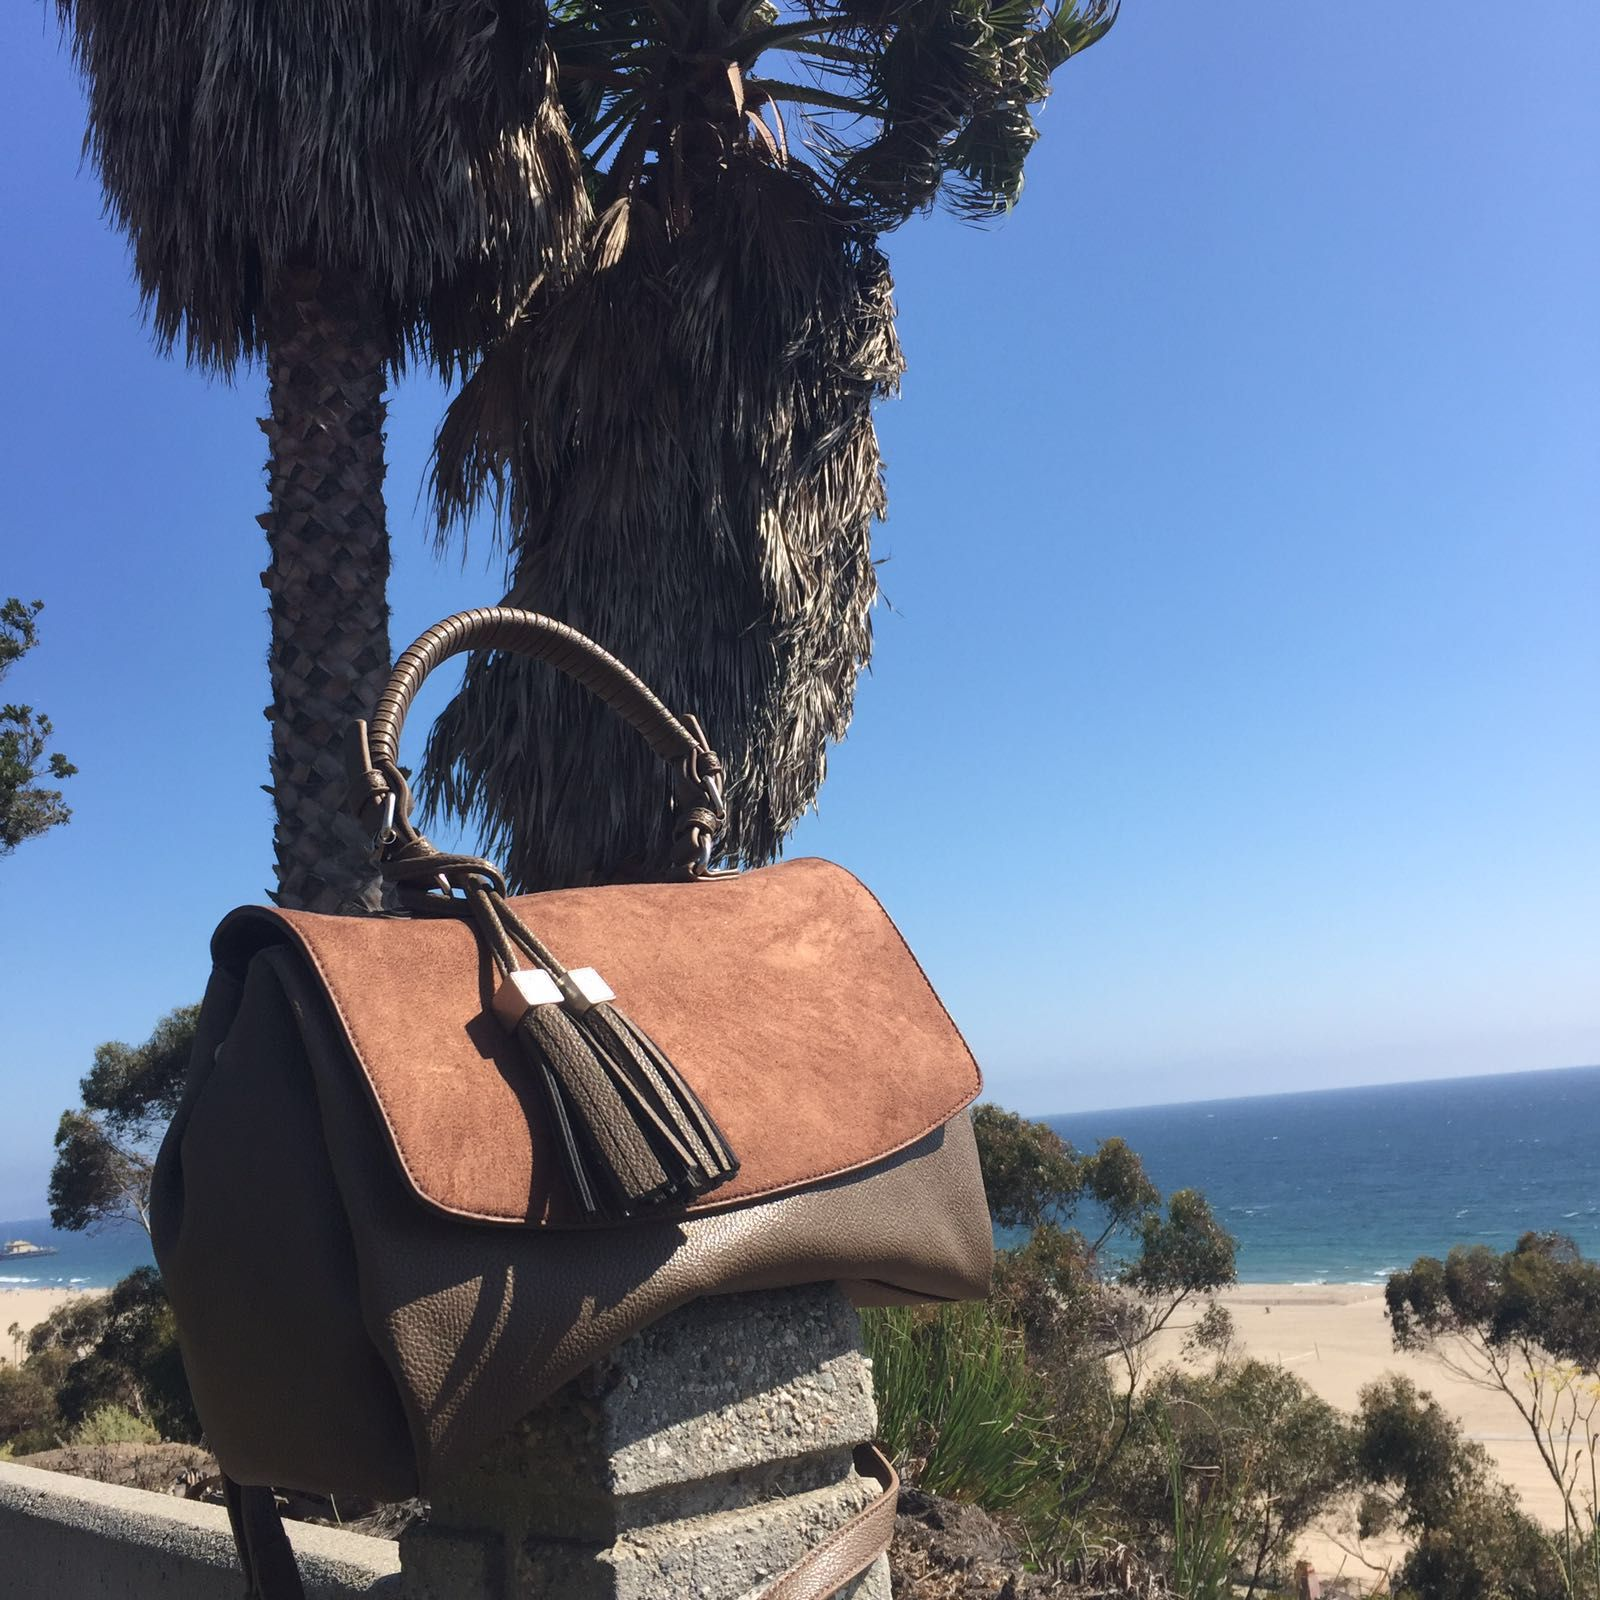 Our Hayley satchel's perfectly crafted soft silhouette is the ideal compliment to your already wonderful wardrobe.  Shop quality vegan handbags at 88-eightyeight.com